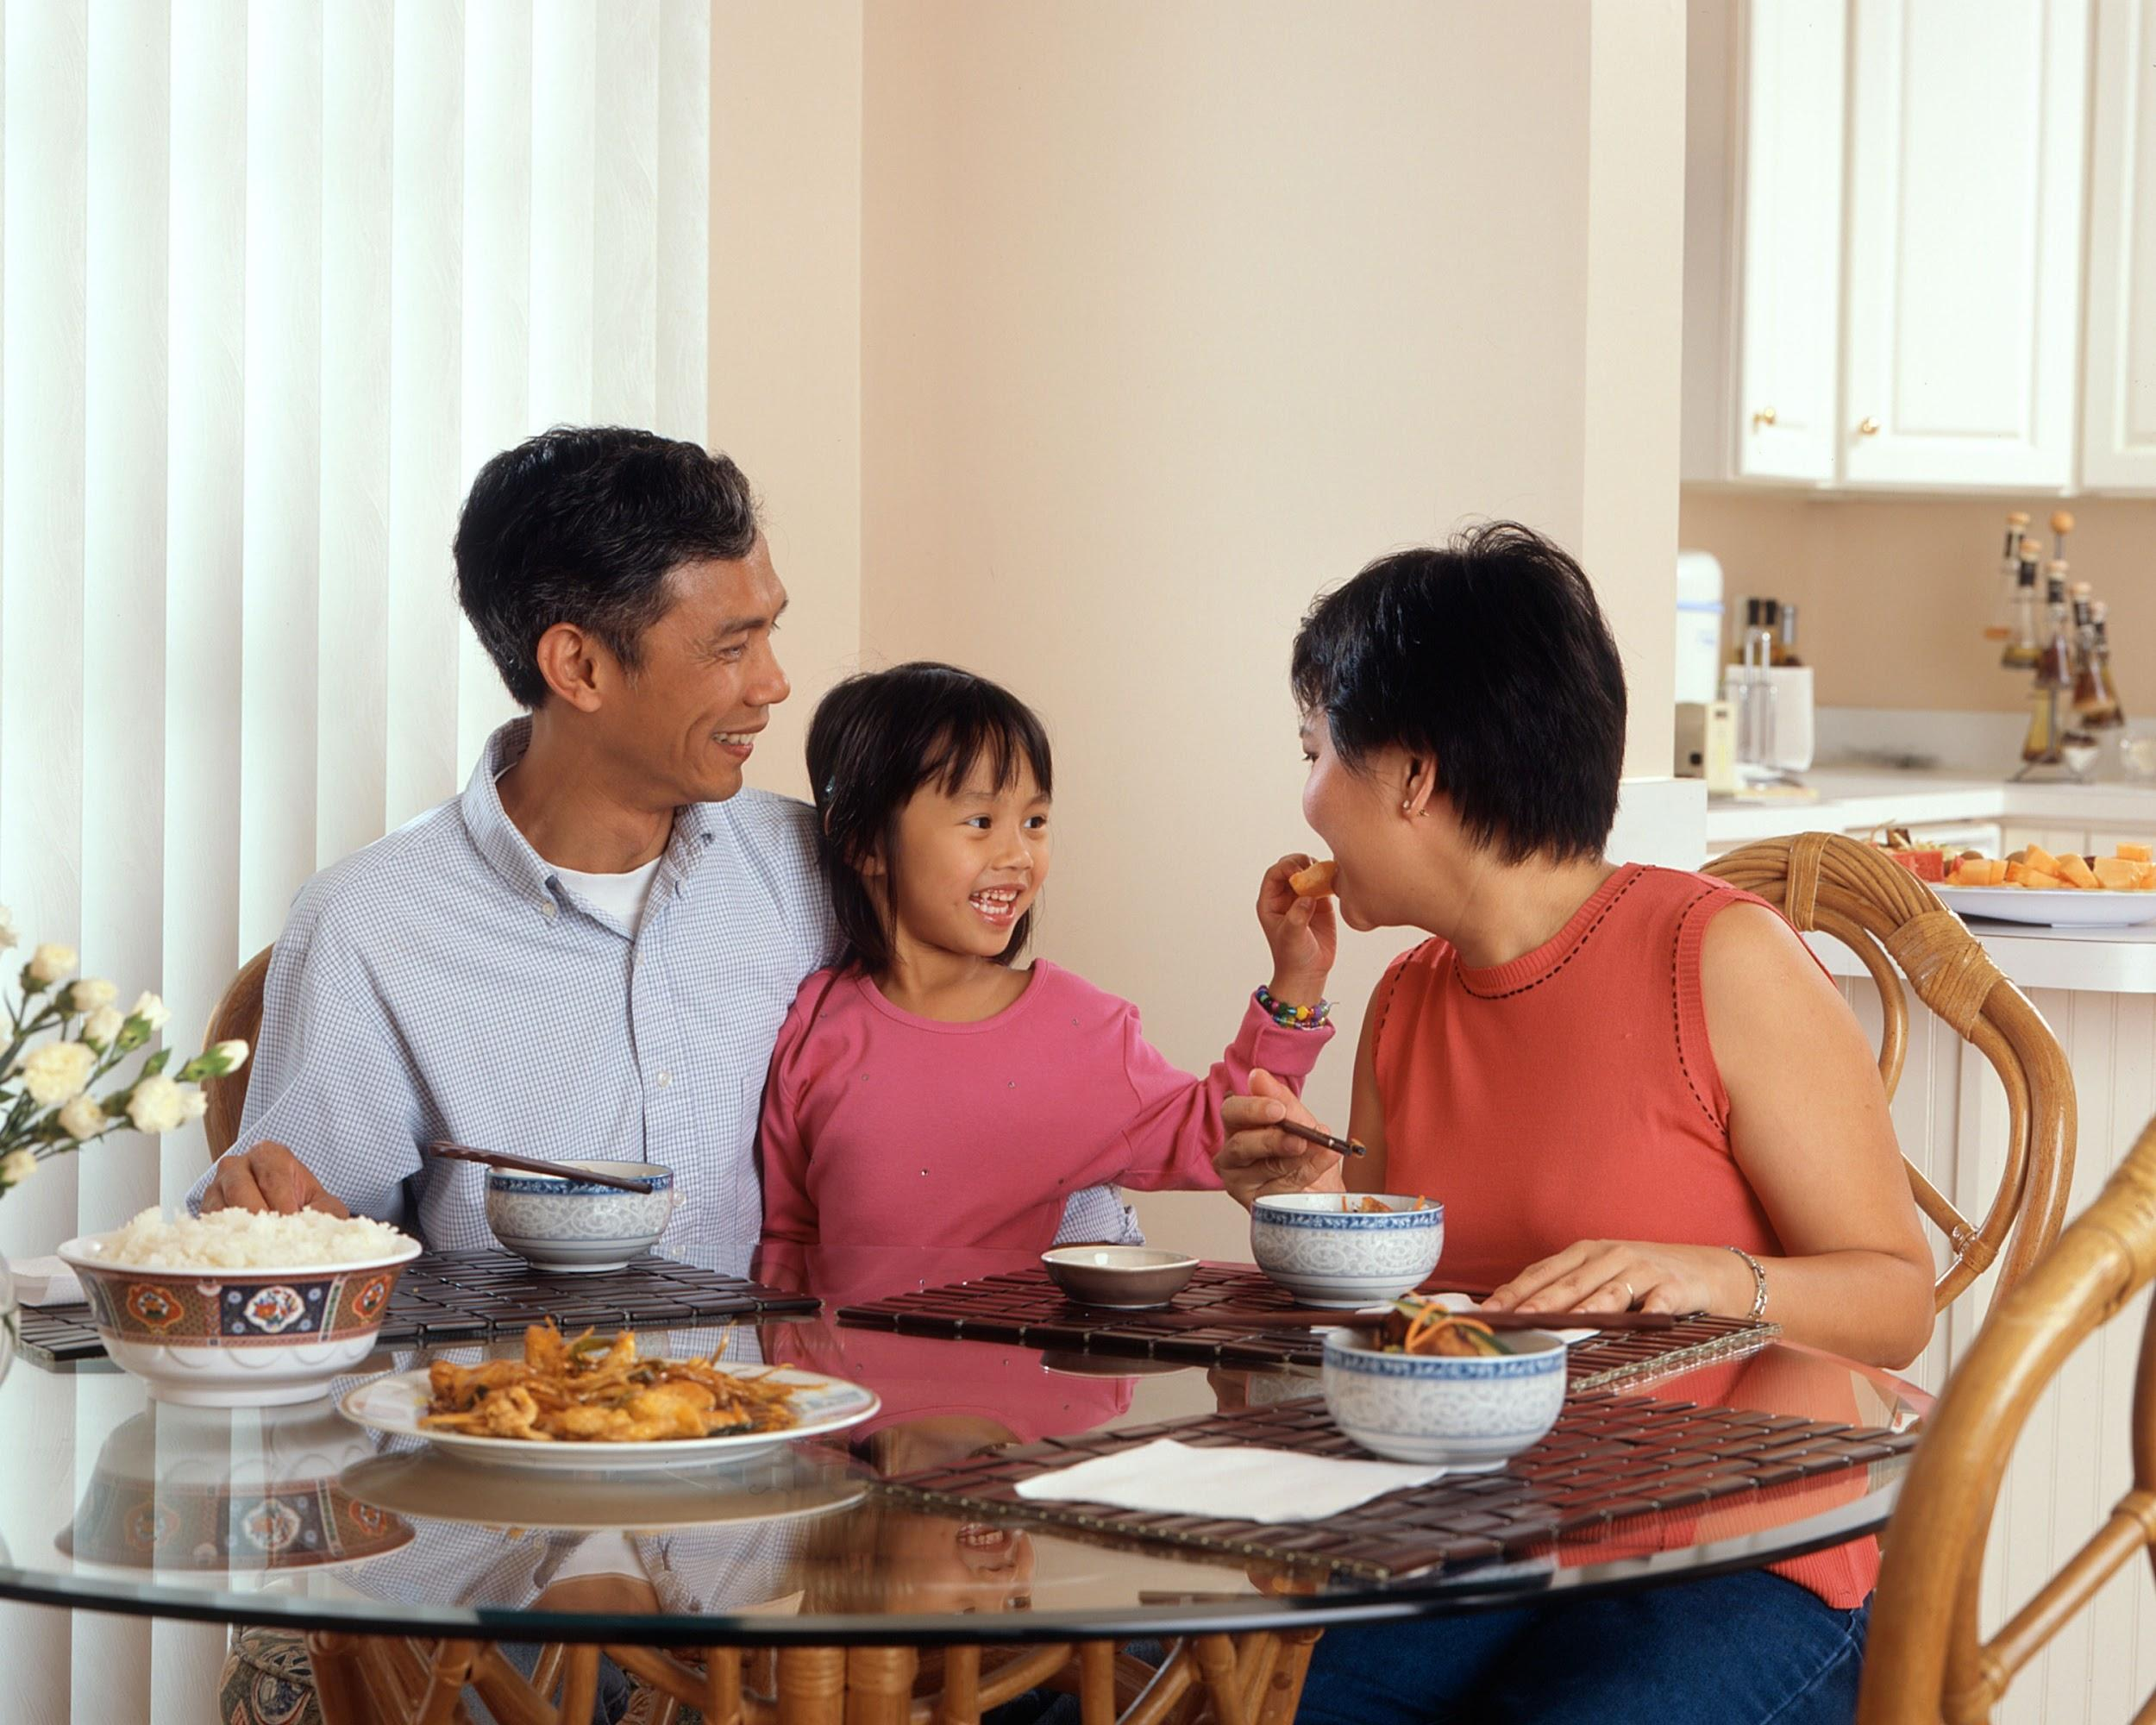 A family of three (mom, dad and daughter) sitting at a glass round table, enjoying a meal of rice and chicken. The young child is feeding the mom a bite of food.